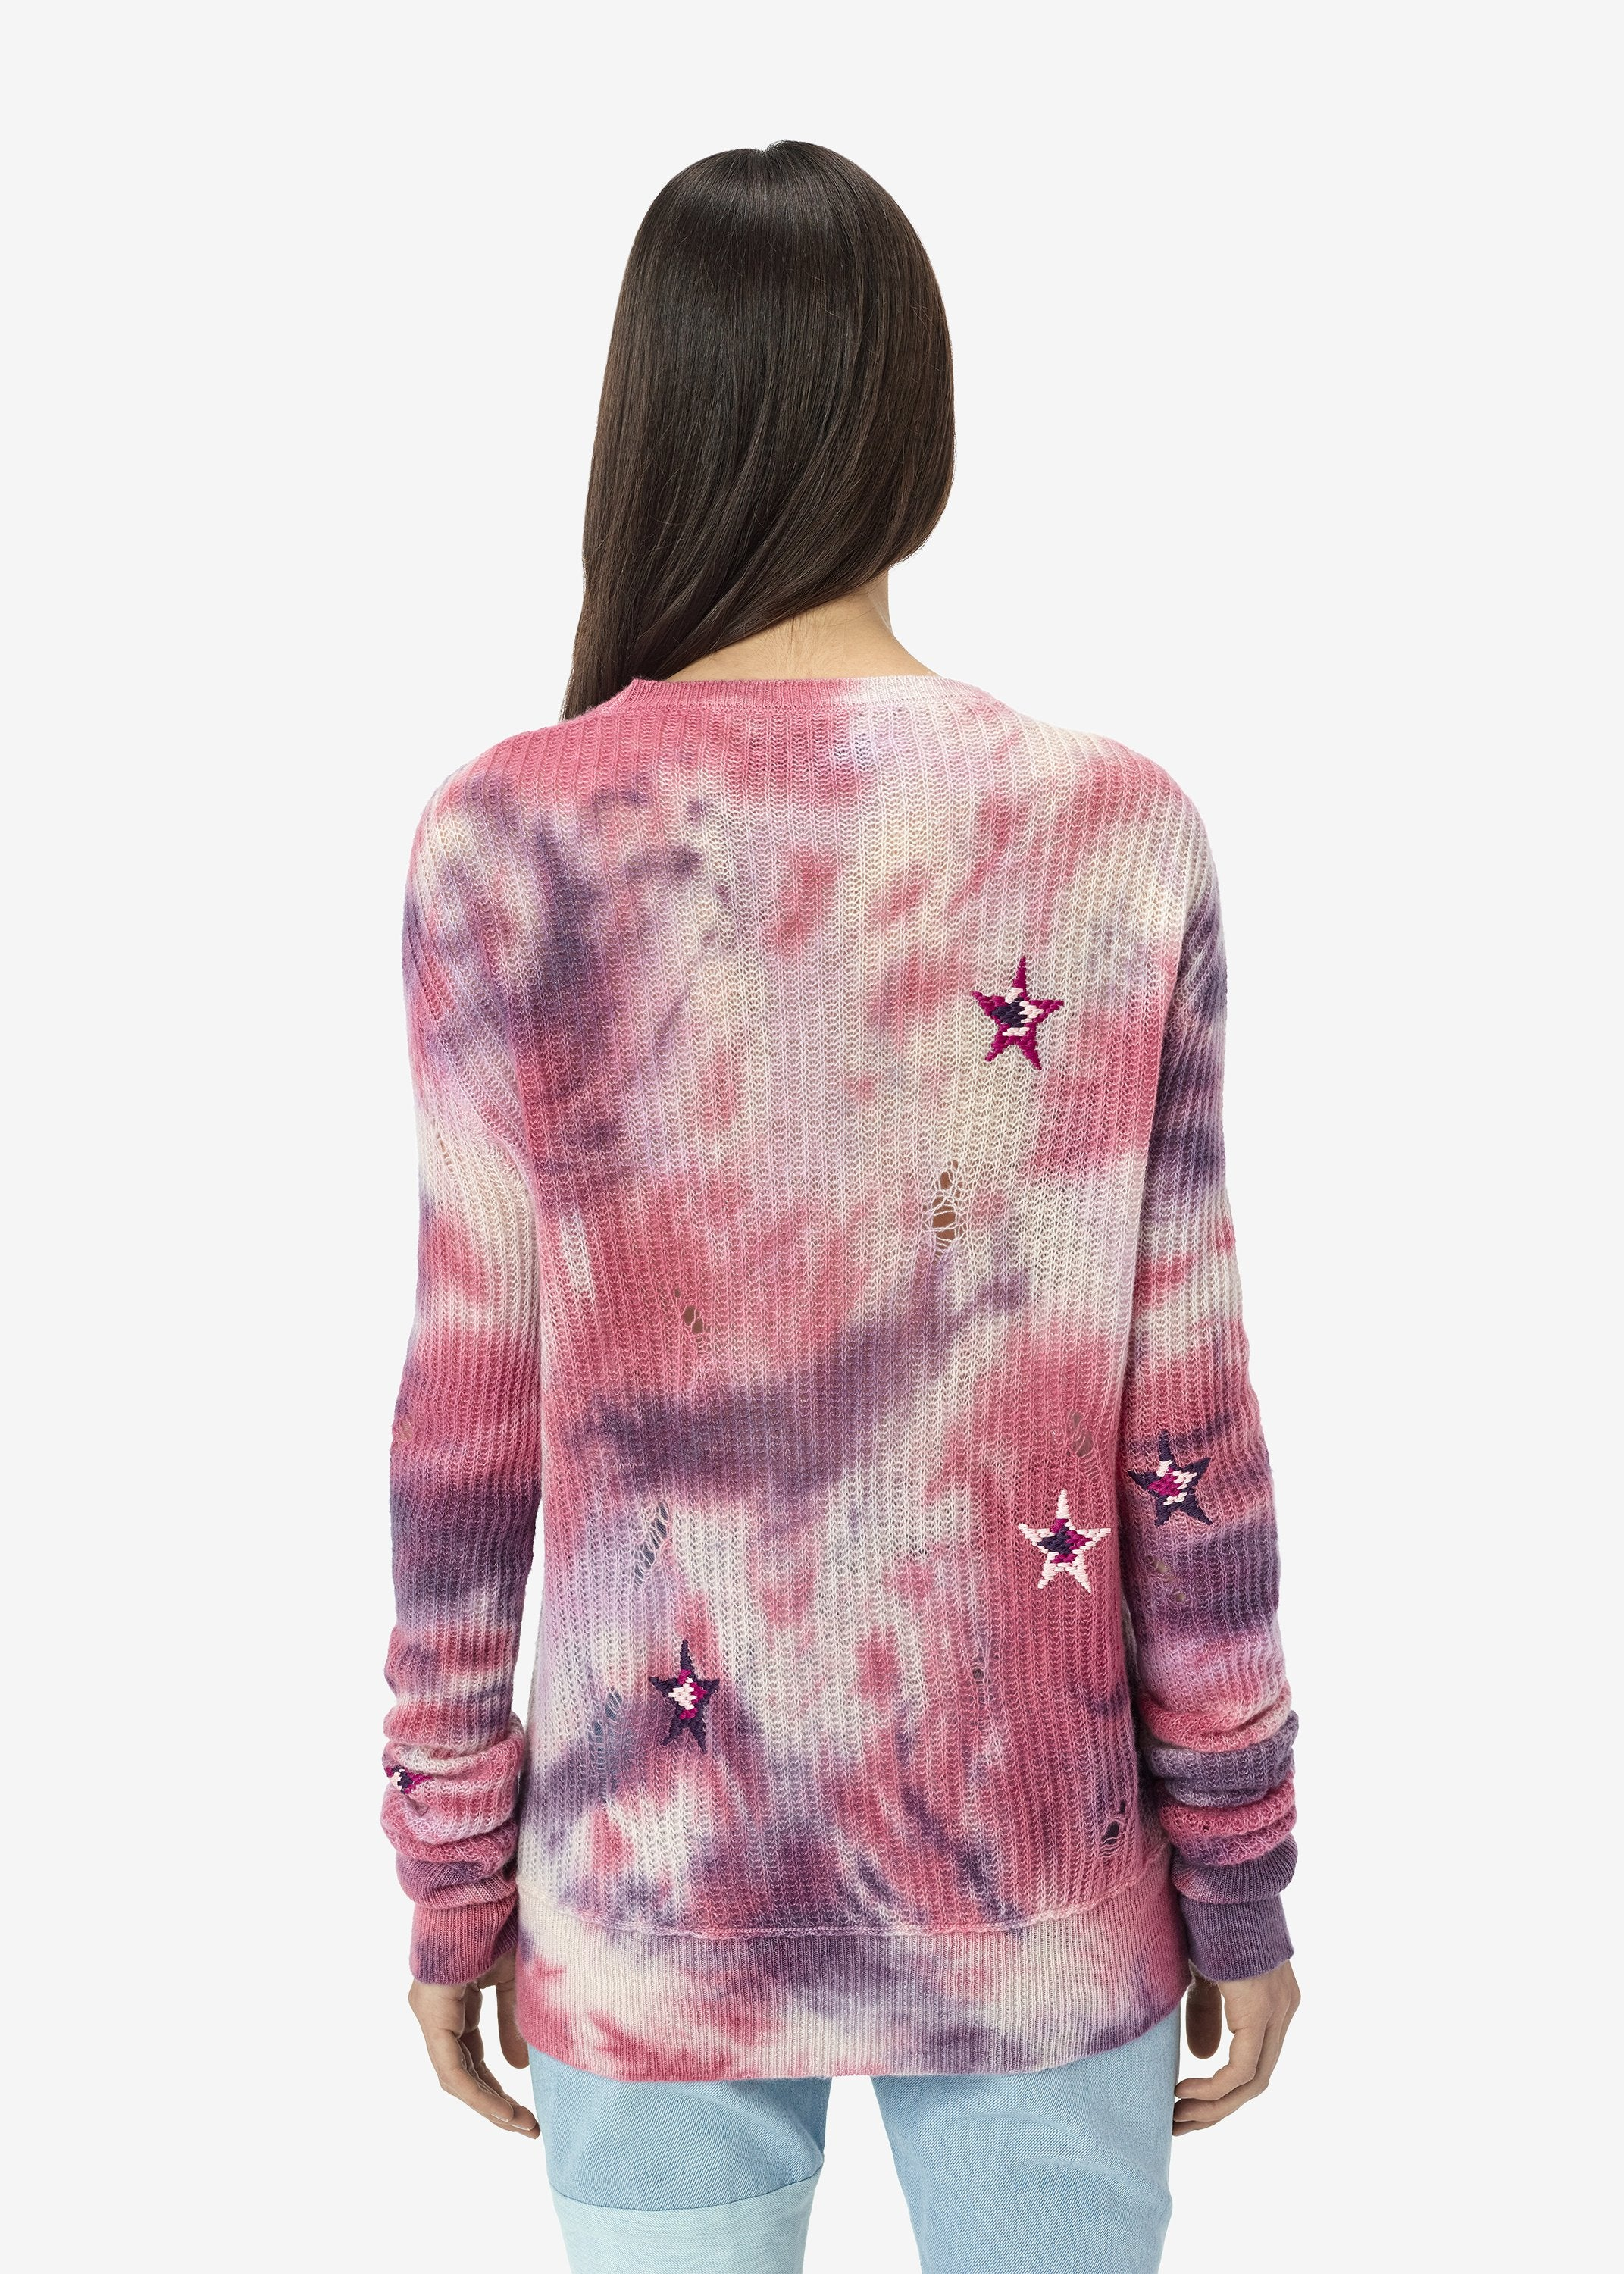 tie-dye-stars-sweater-multi-color-image-3